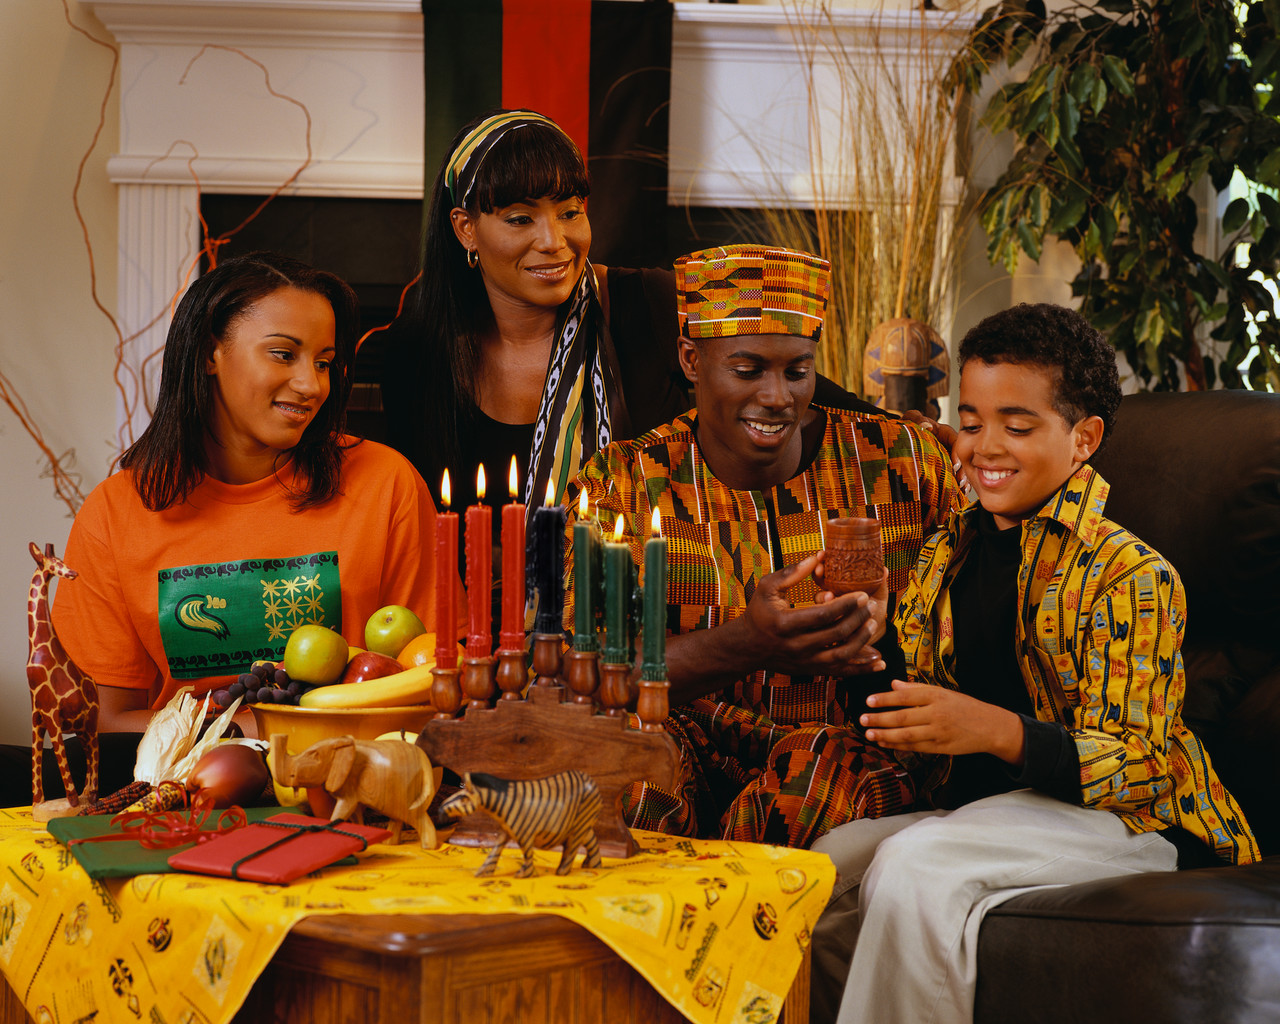 ca. 2001 --- Family Celebrating Kwanzaa --- Image by © Royalty-Free/Corbis